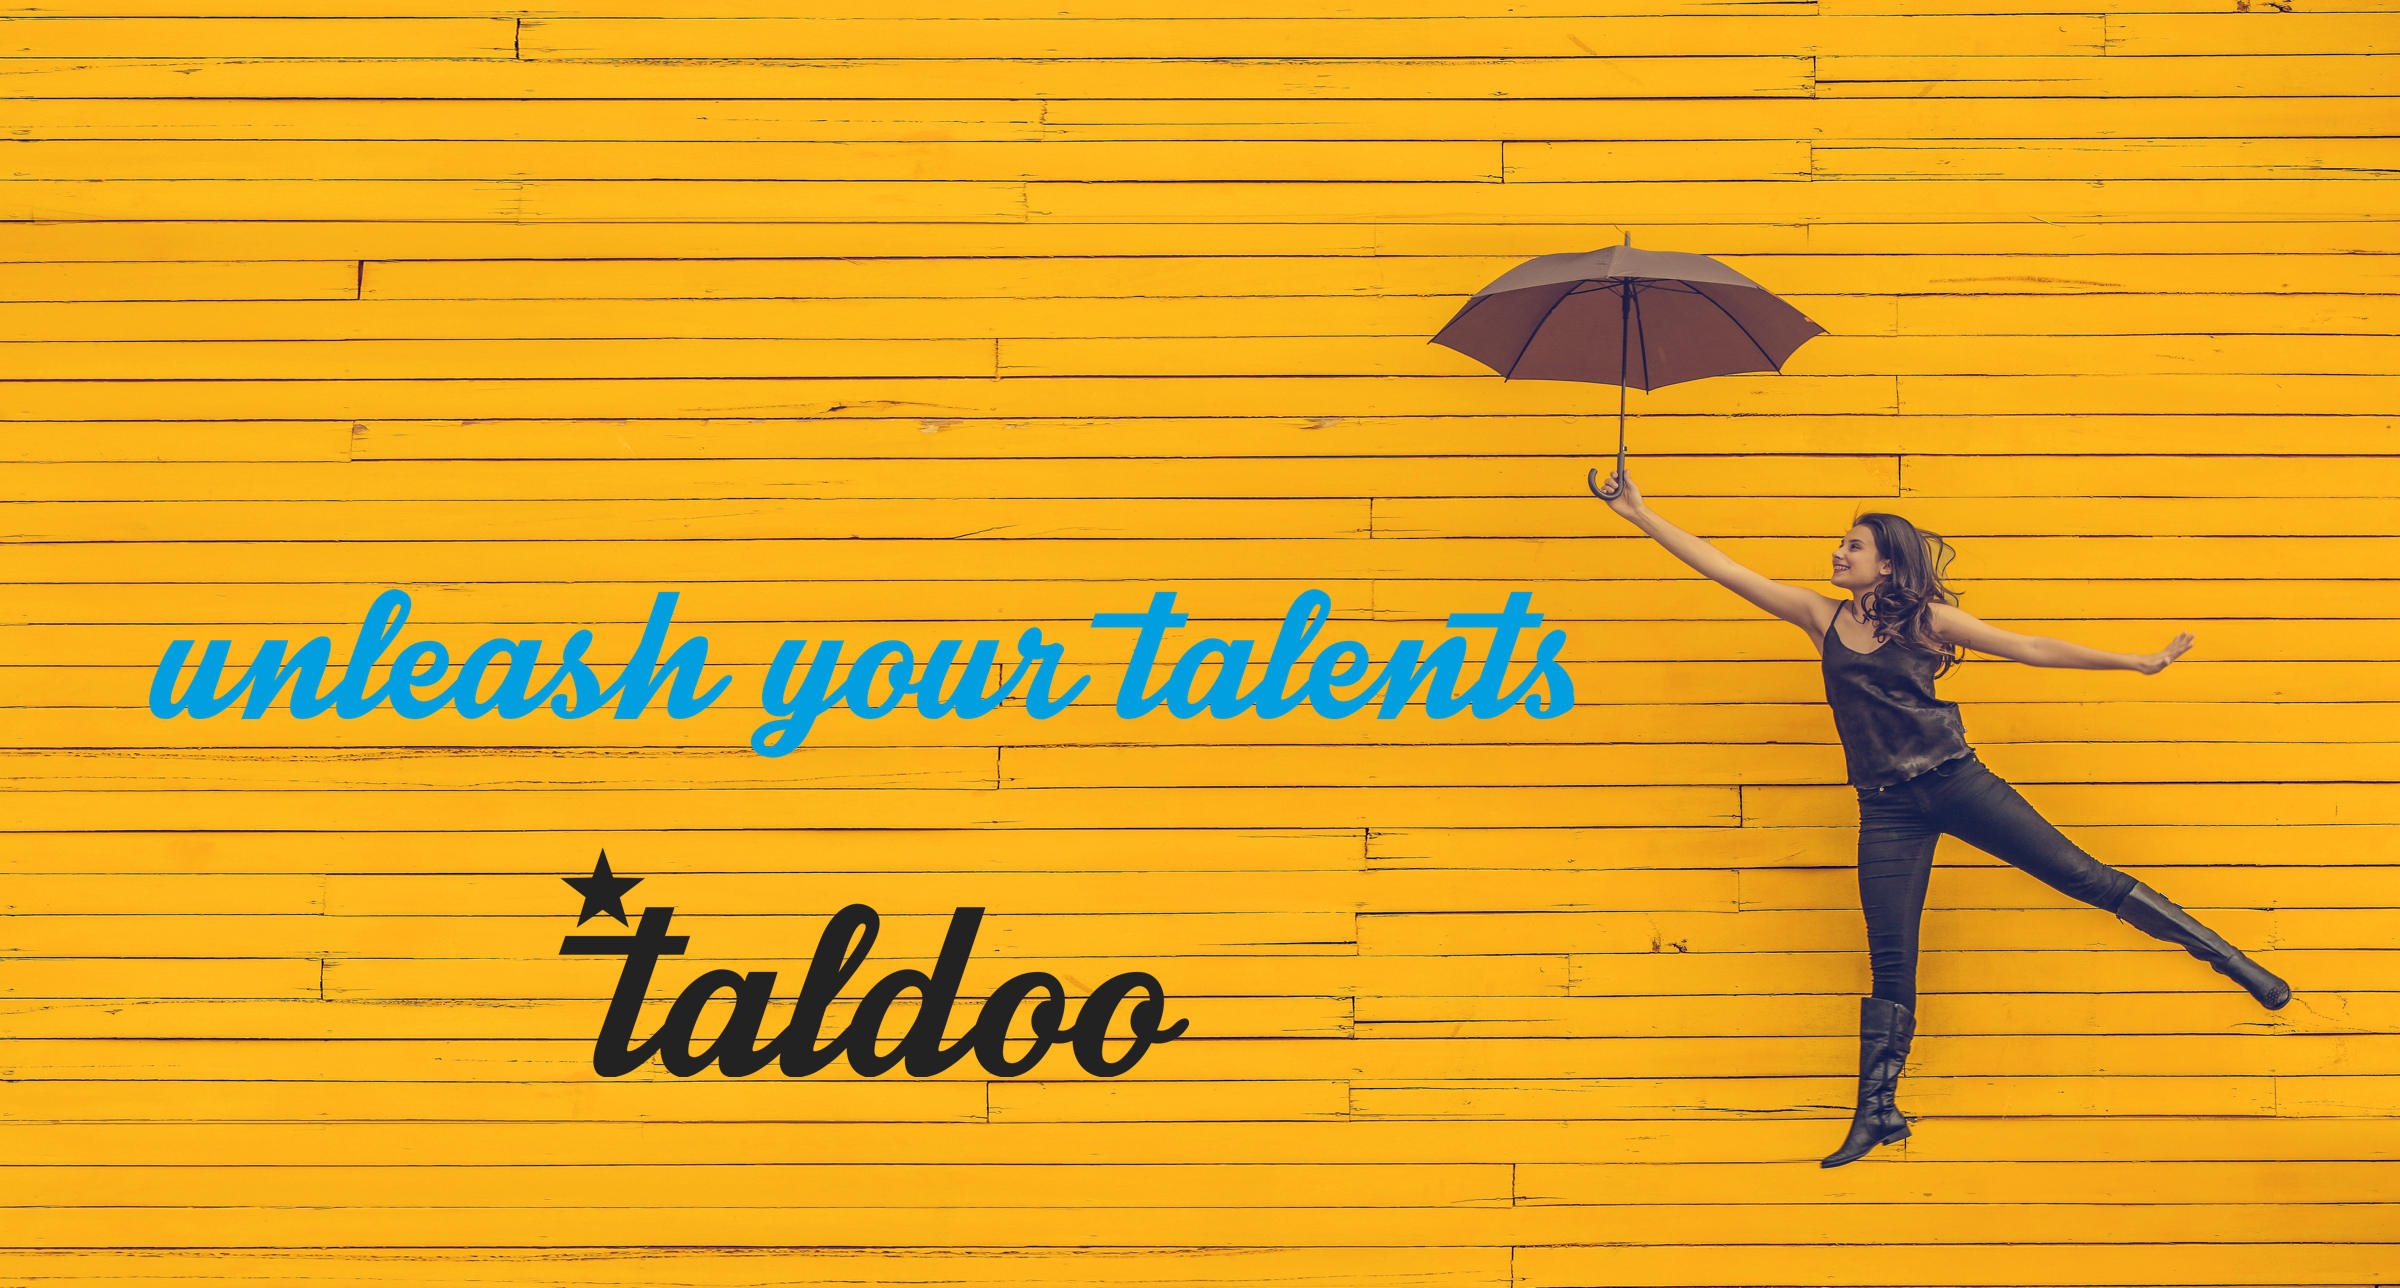 taldoo talent management database